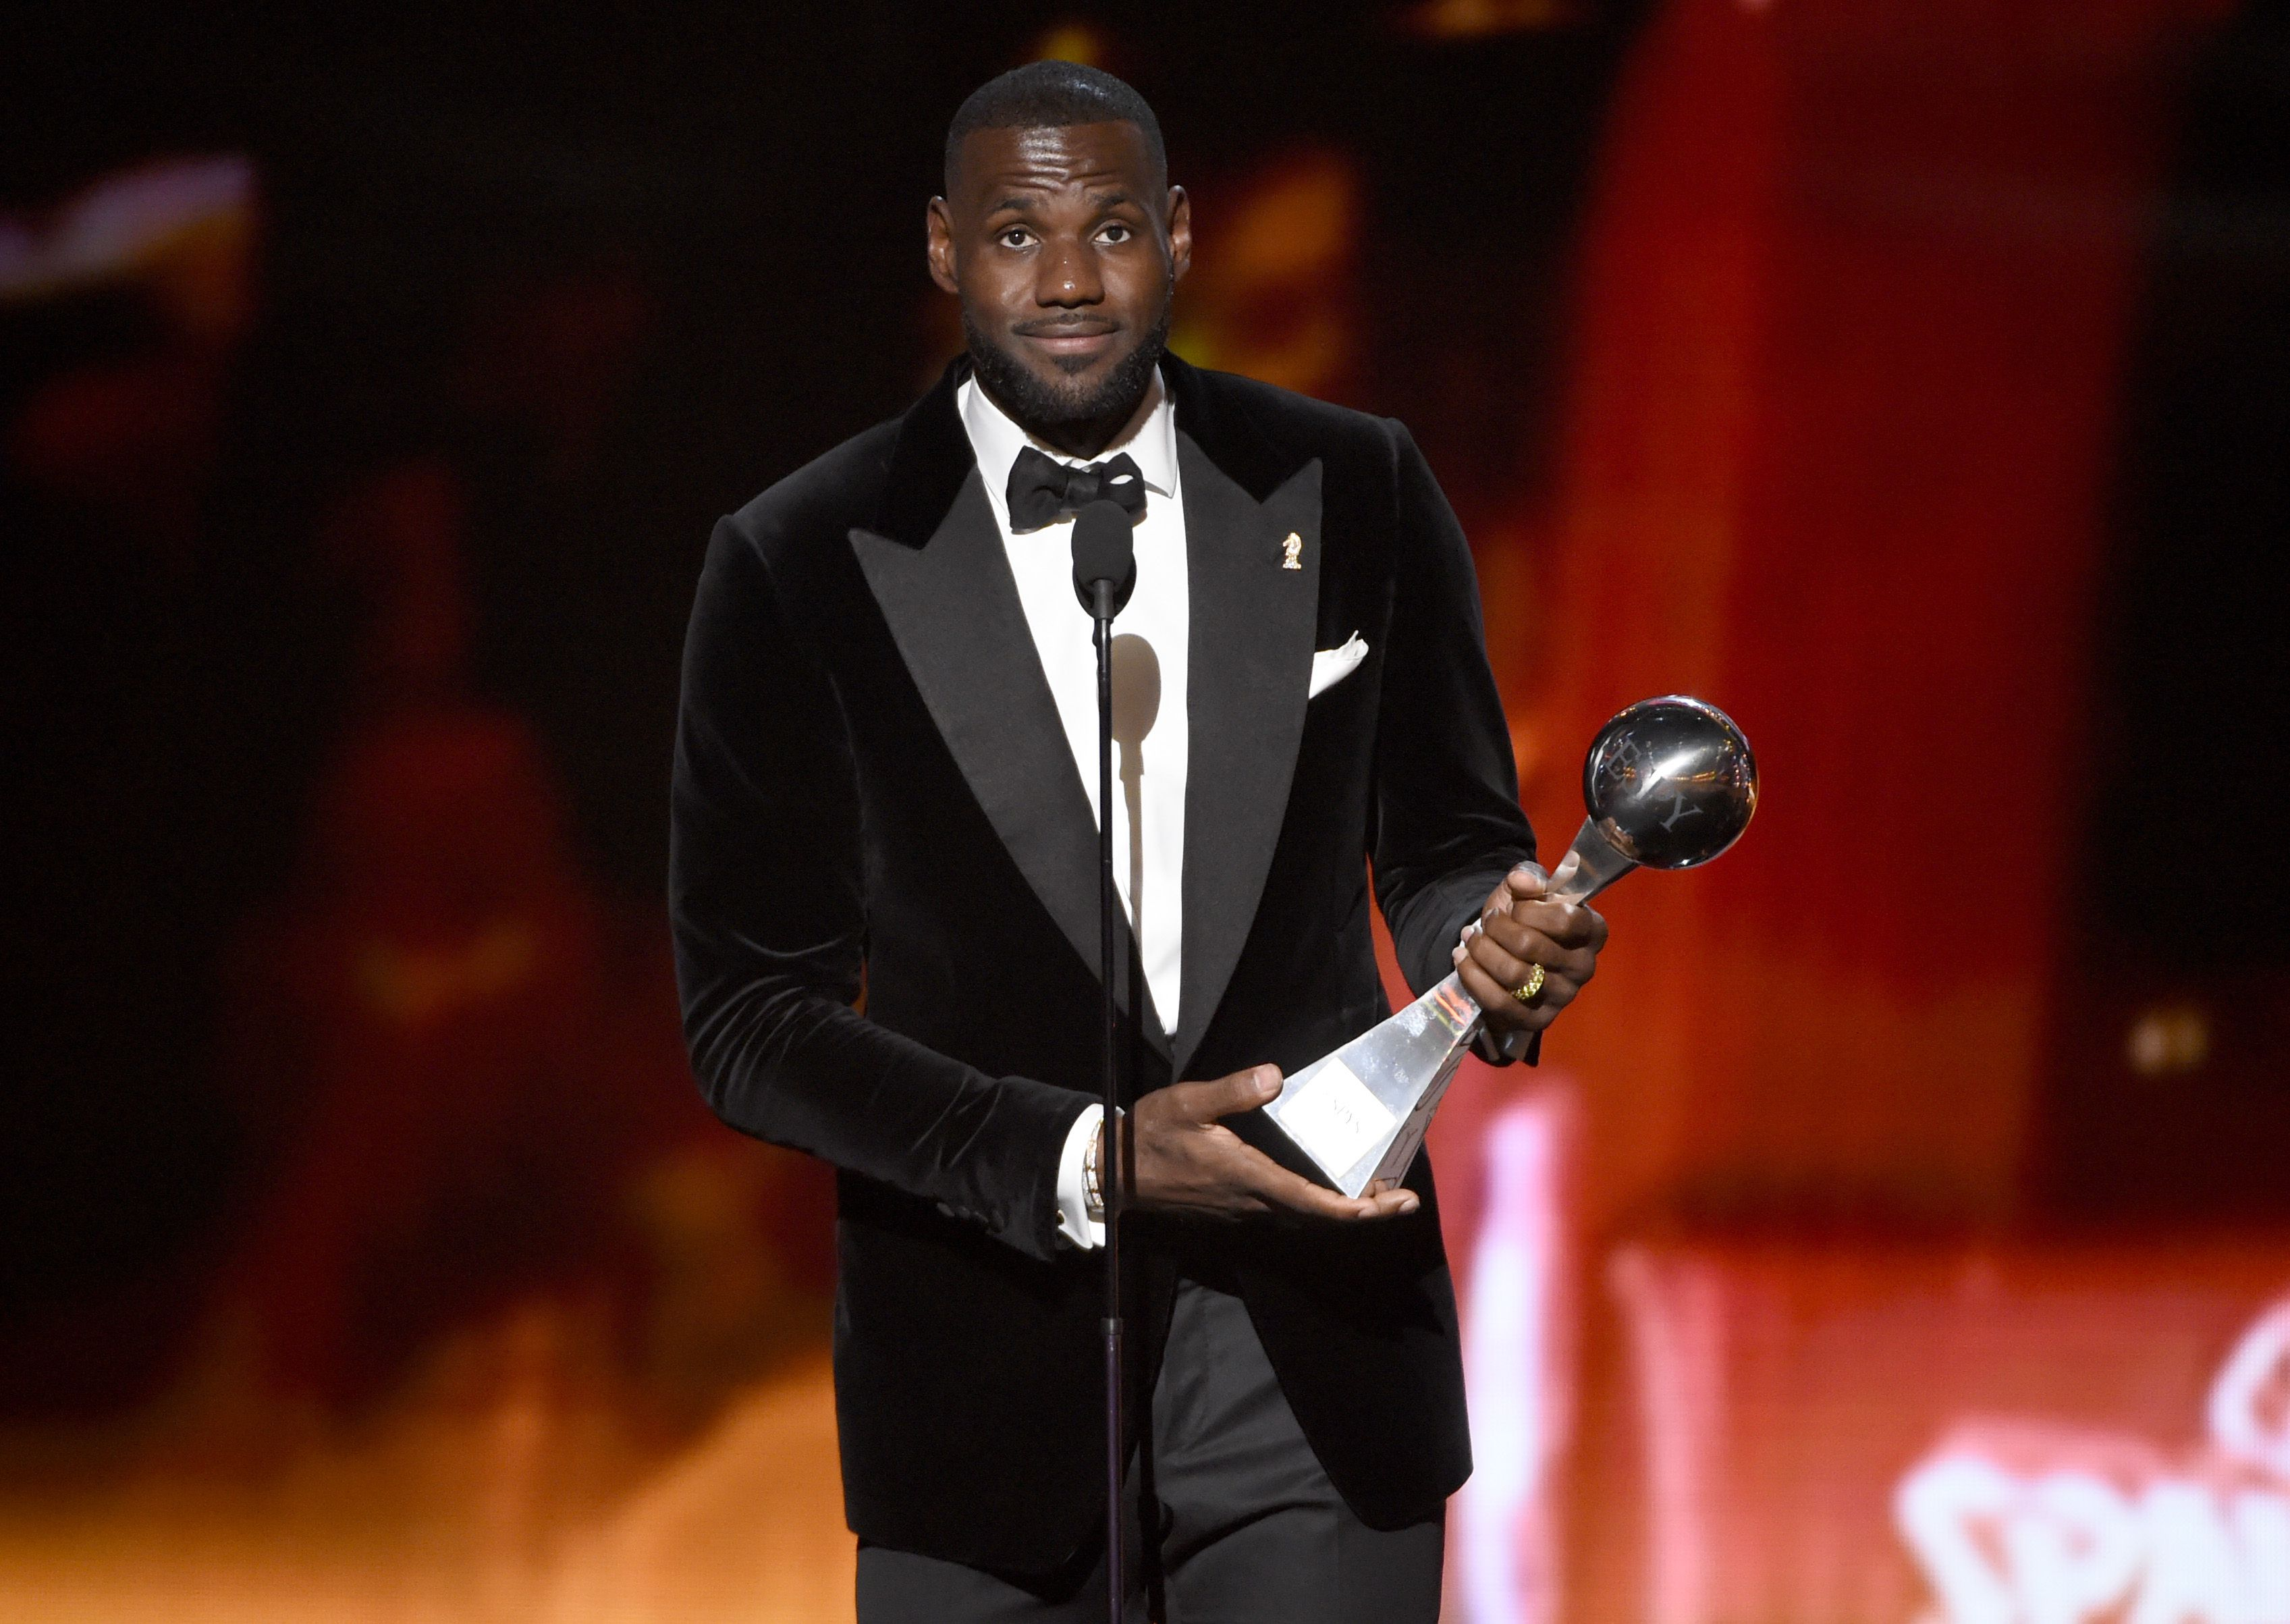 LeBron James receiving an ESPY